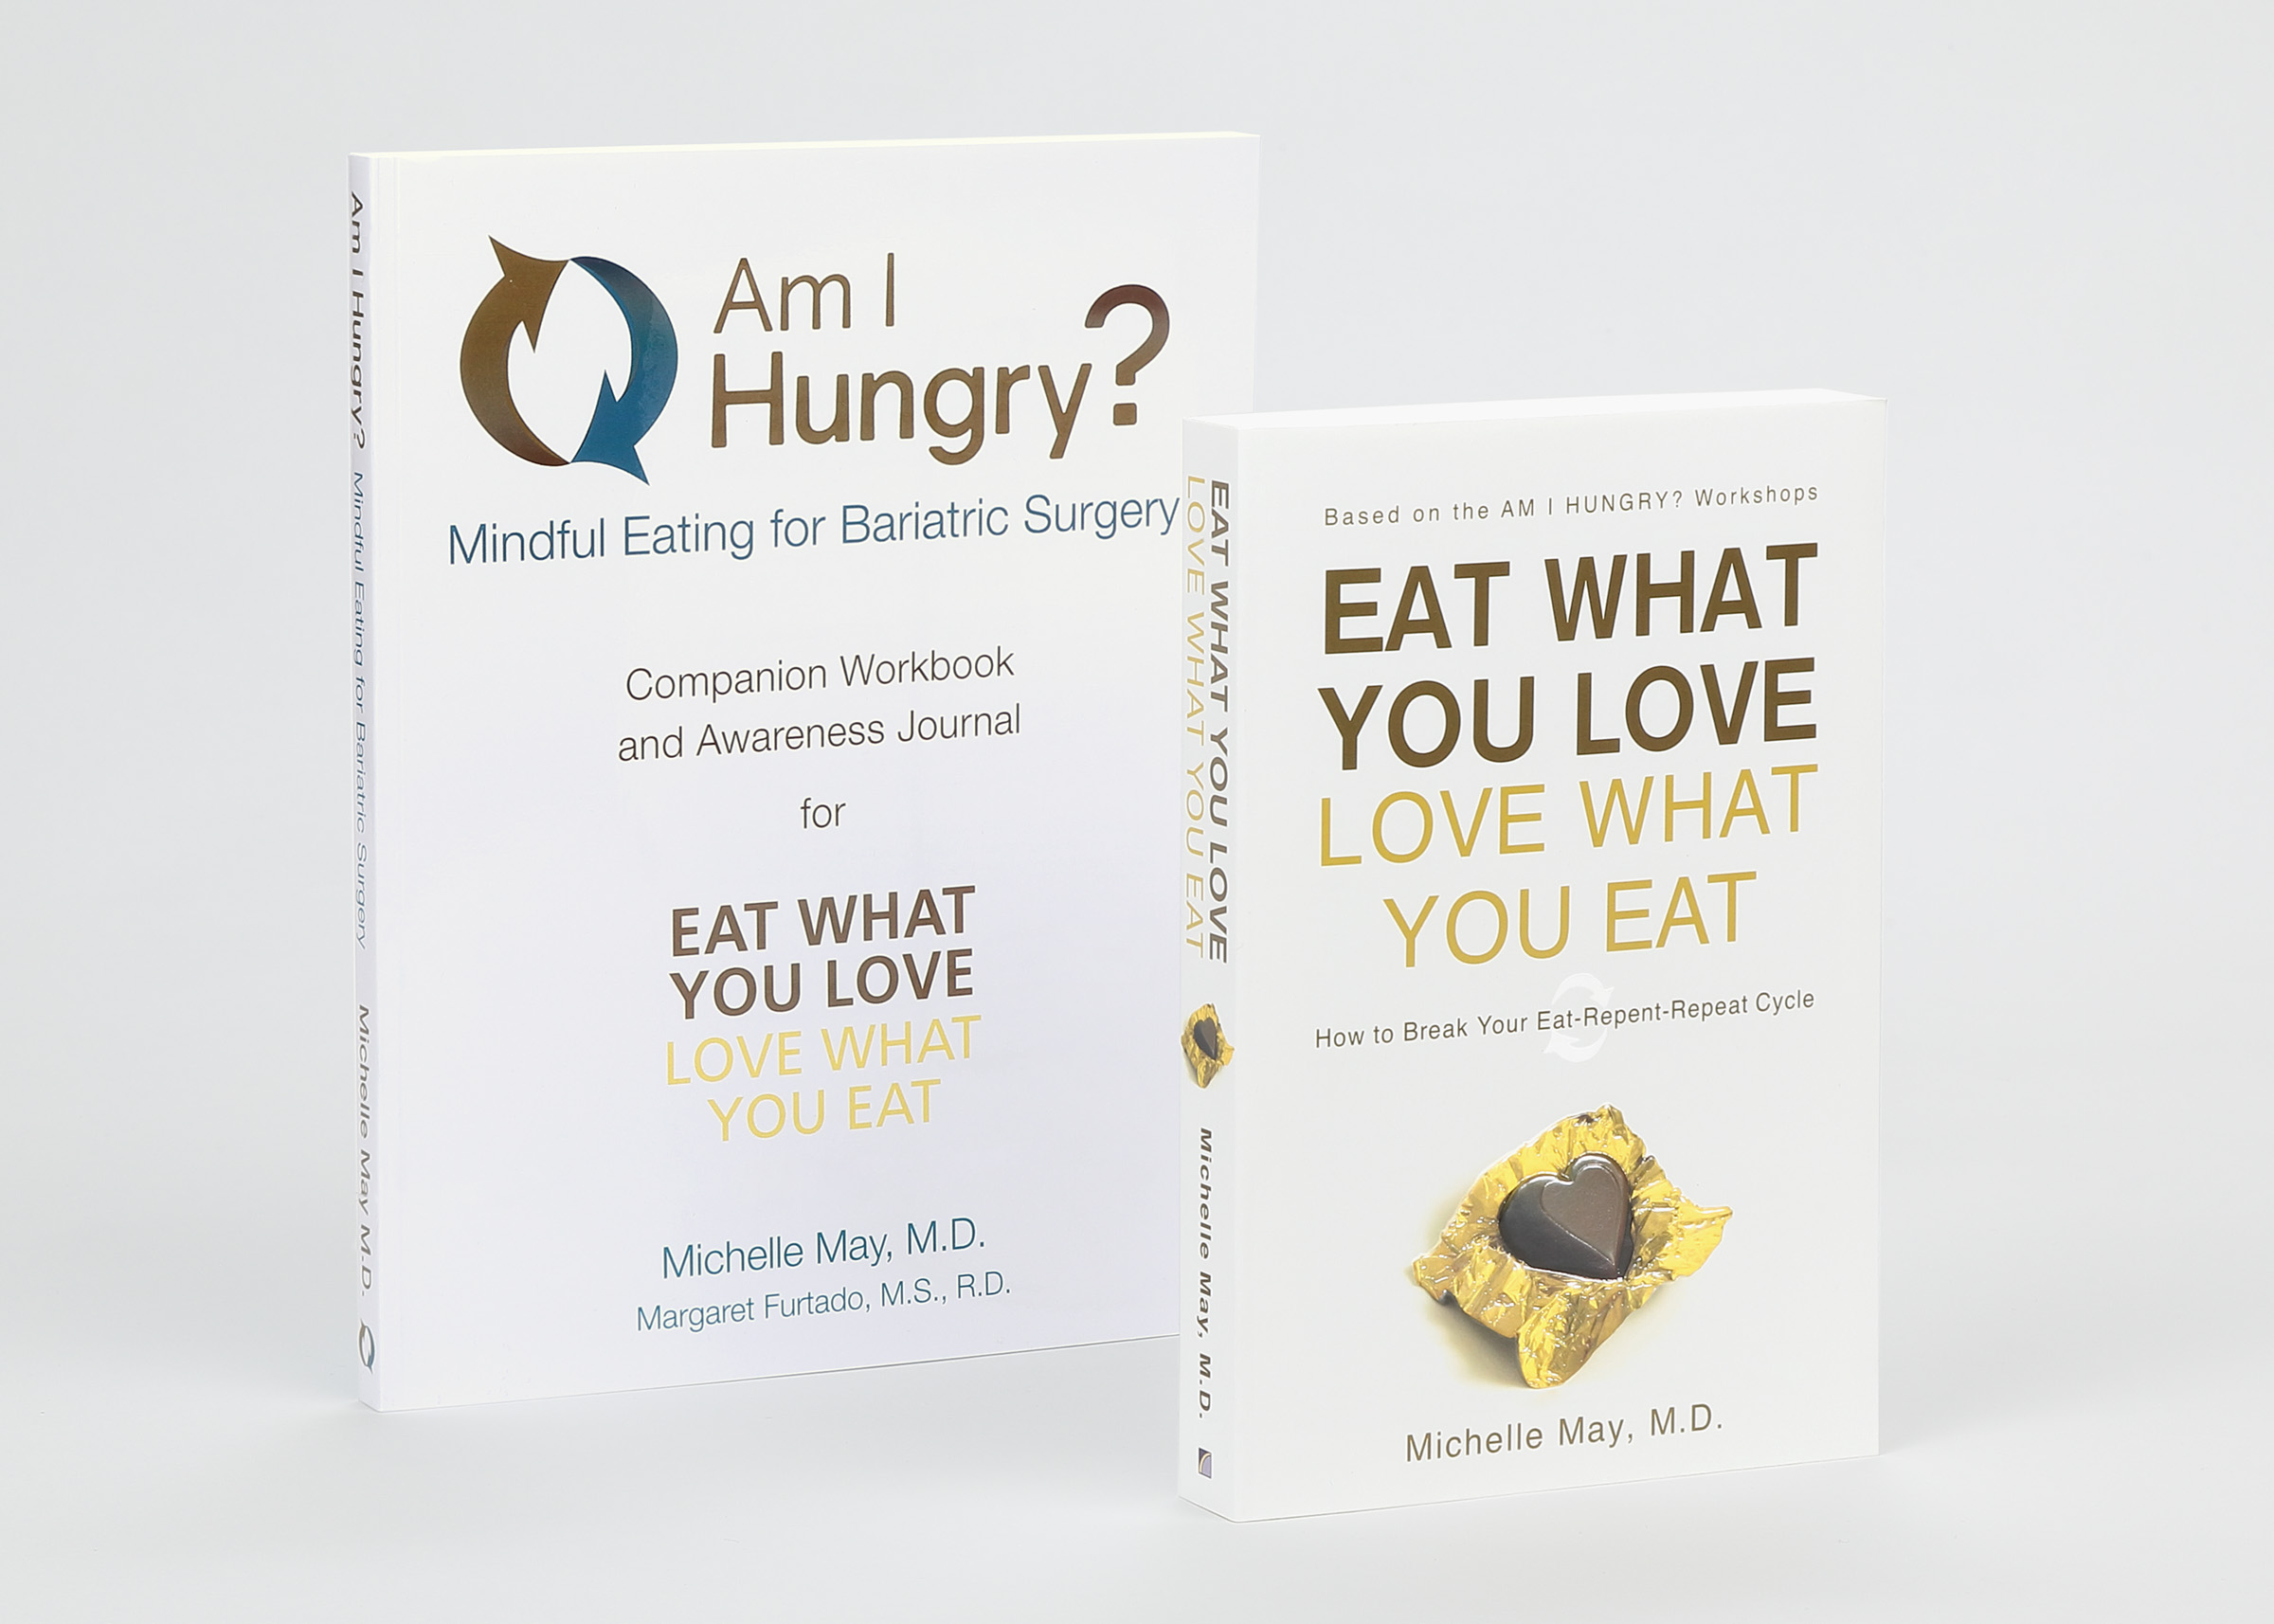 Am I Hungry? Mindful Eating for Bariatric Surgery Set